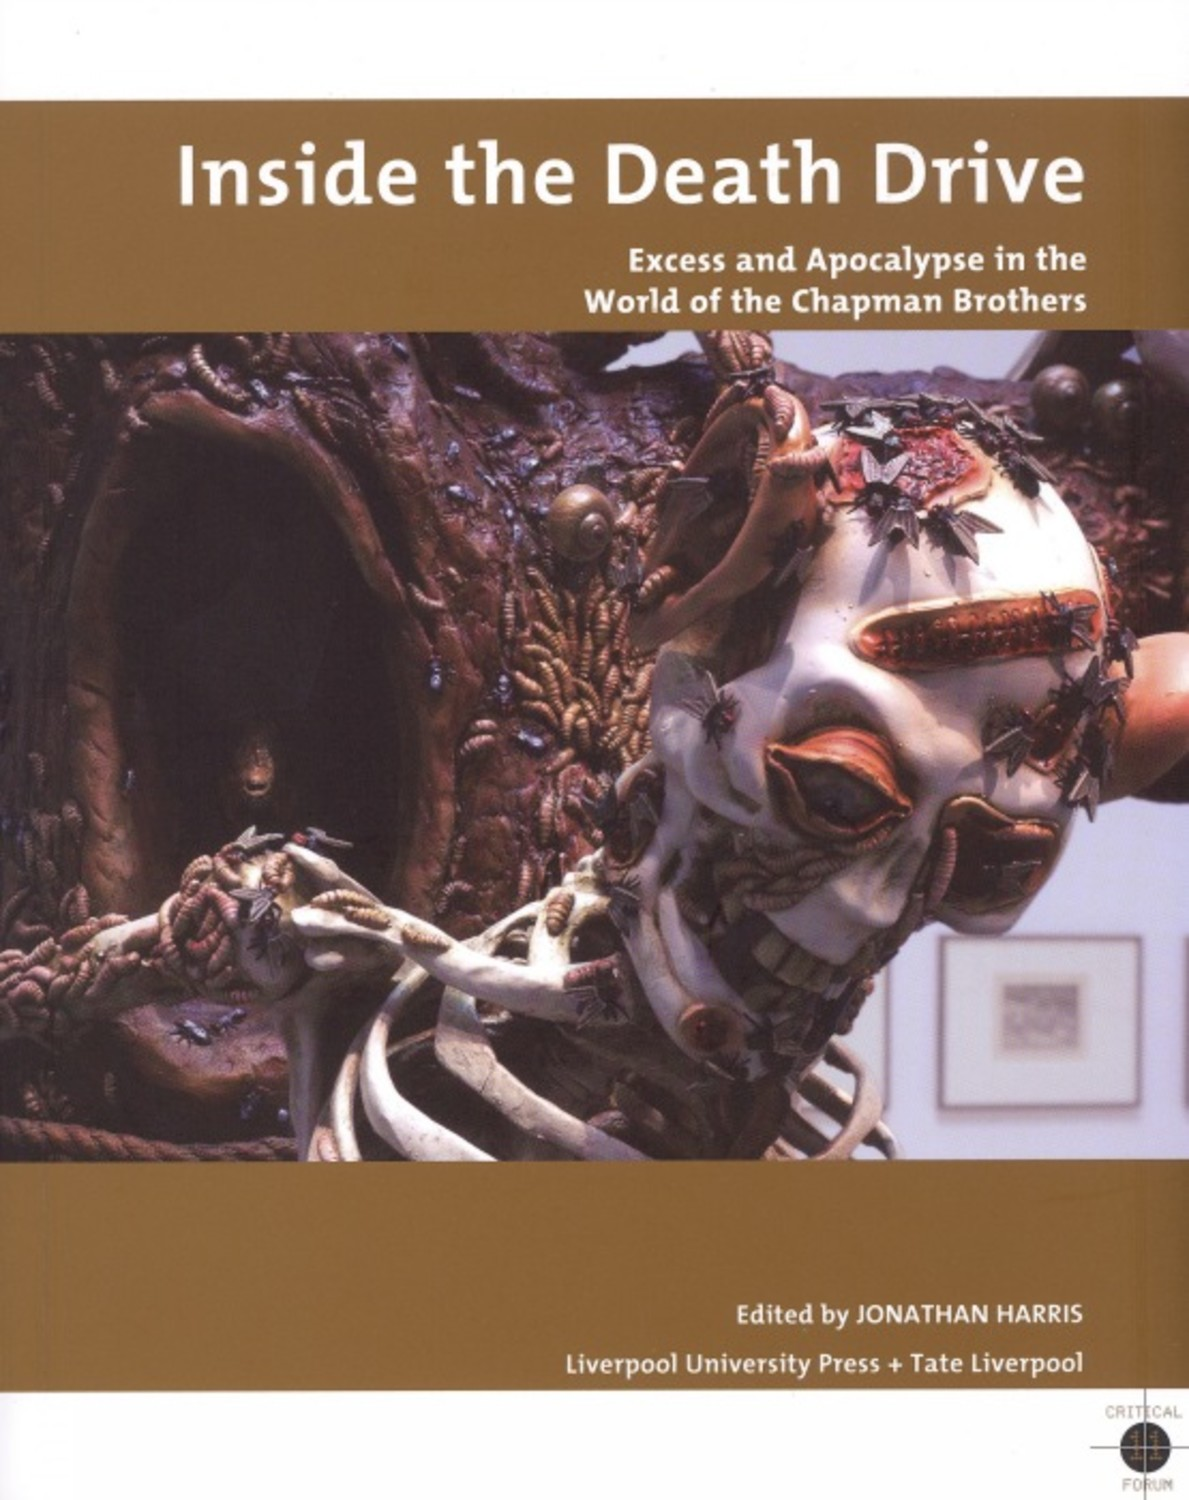 Inside the Death Drive